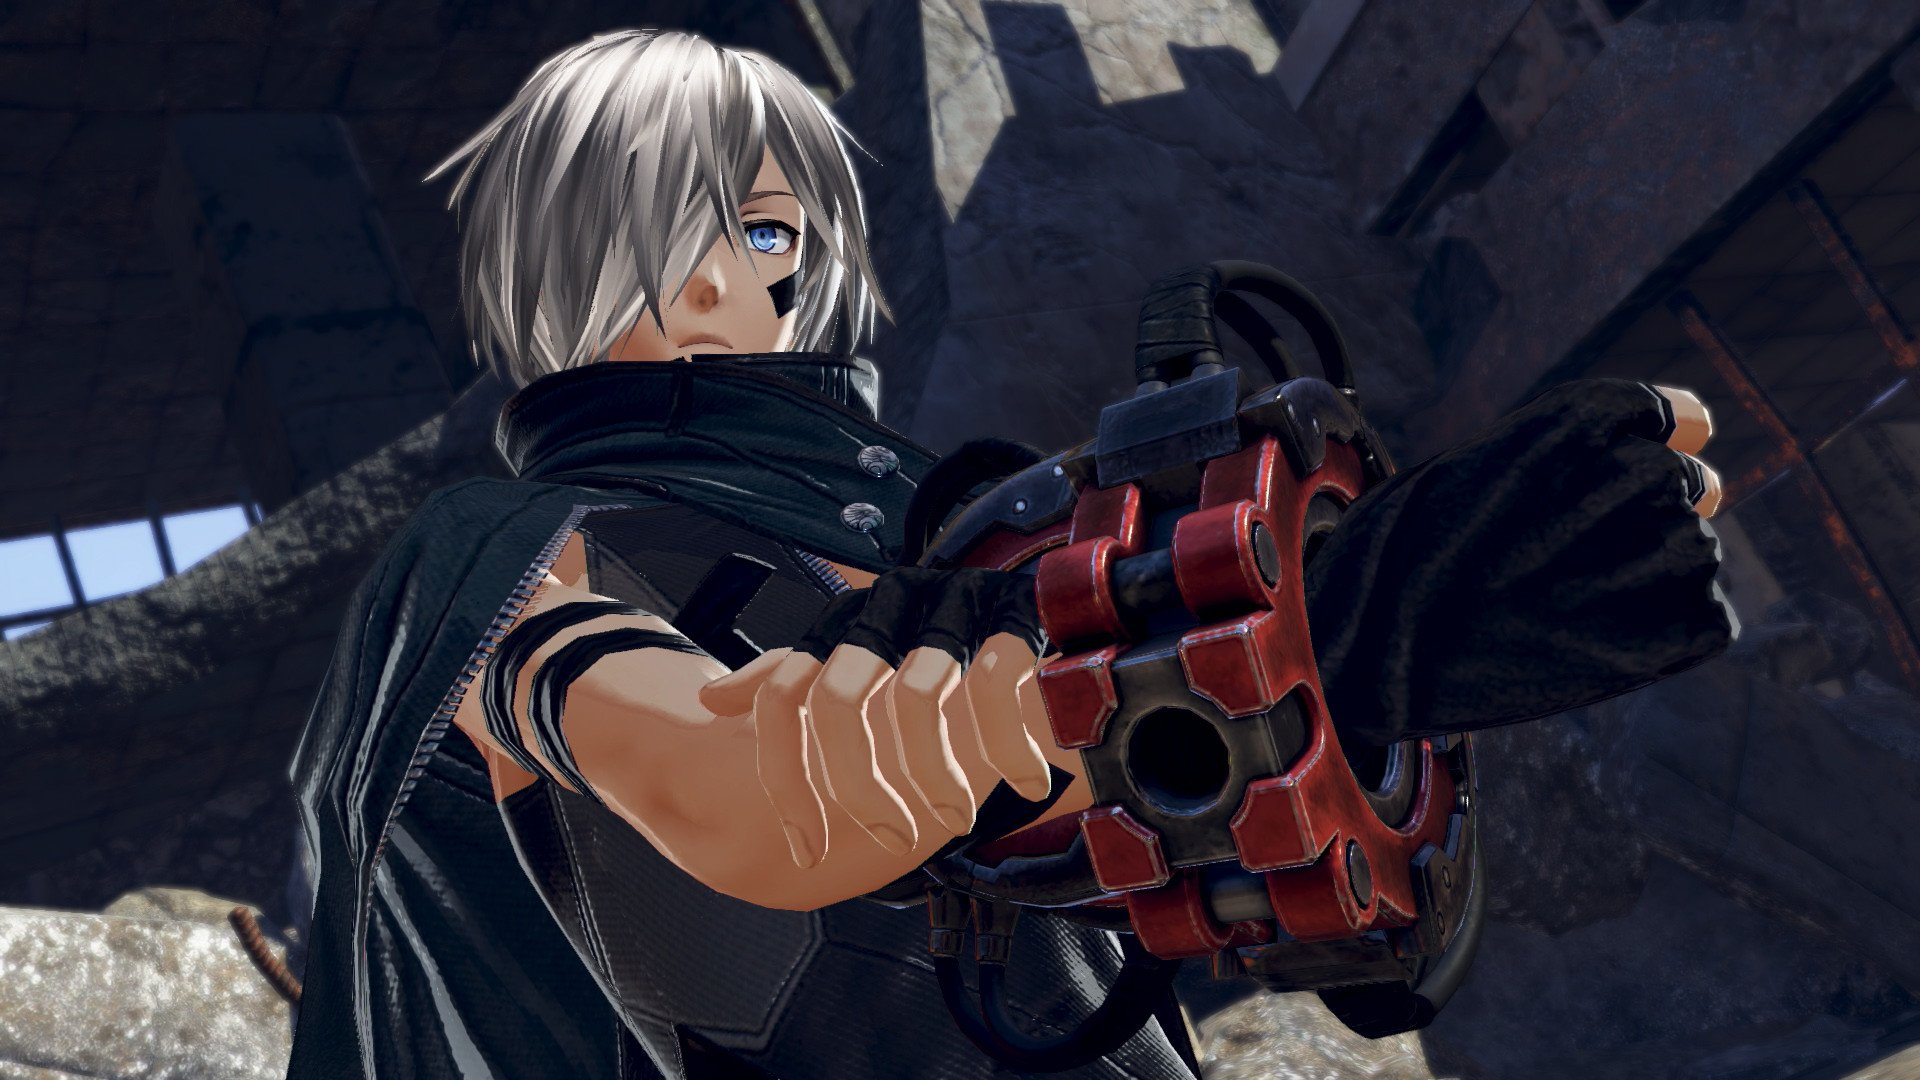 God Eater 3 player character close-up